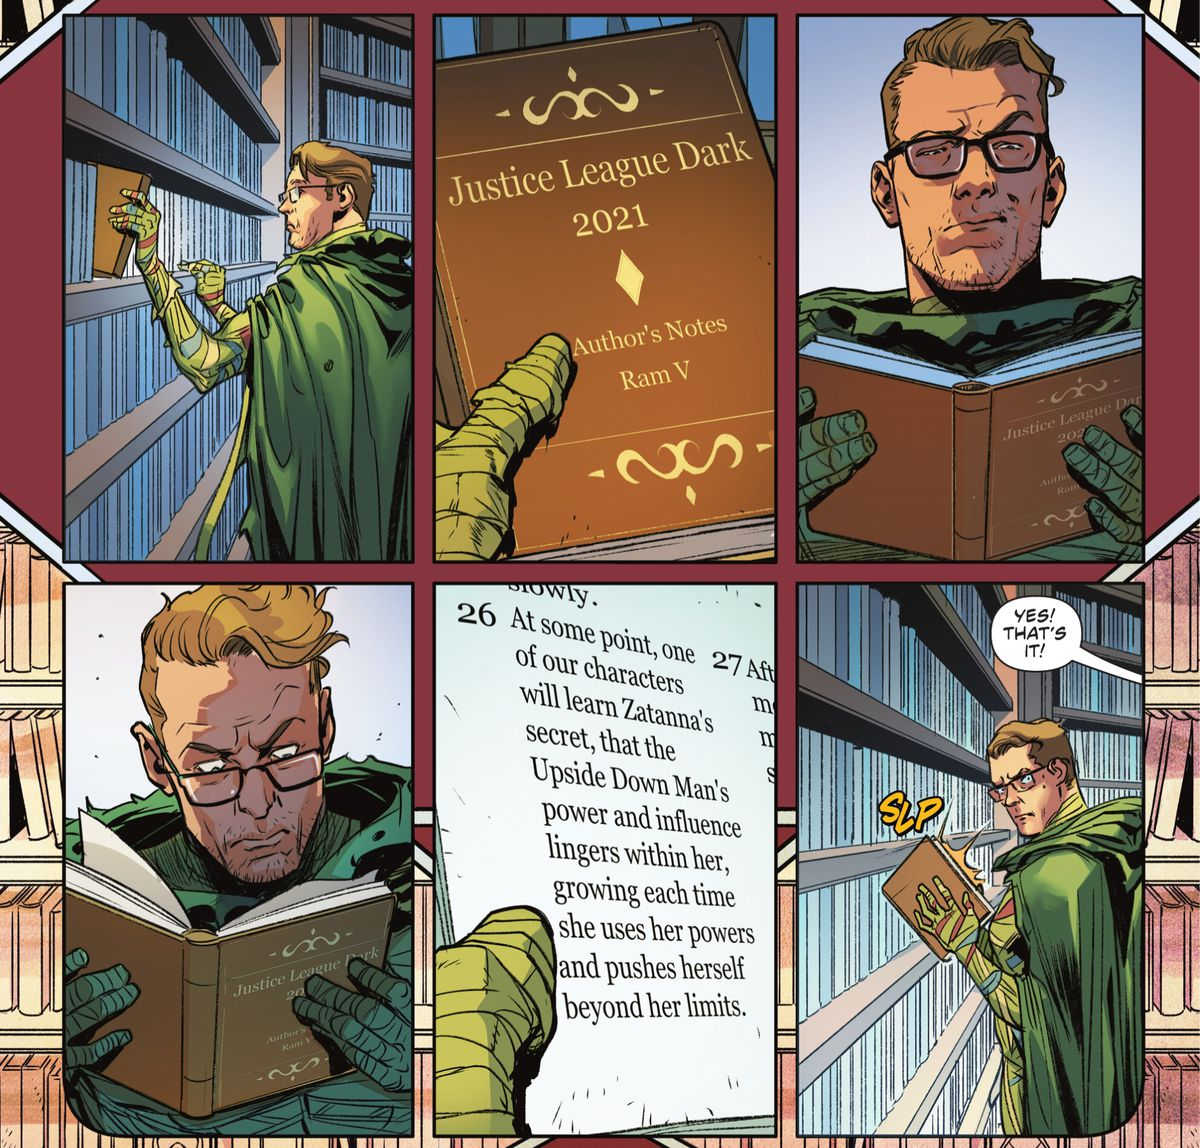 """Ragman picks up a book titled """"Justice League Dark 2021: Authors Notes"""" and opens it to find a paragraph describing Zatanna's dark secret. He slaps the book shut with a furtive glance at the reader in Justice League #62 (2021)."""